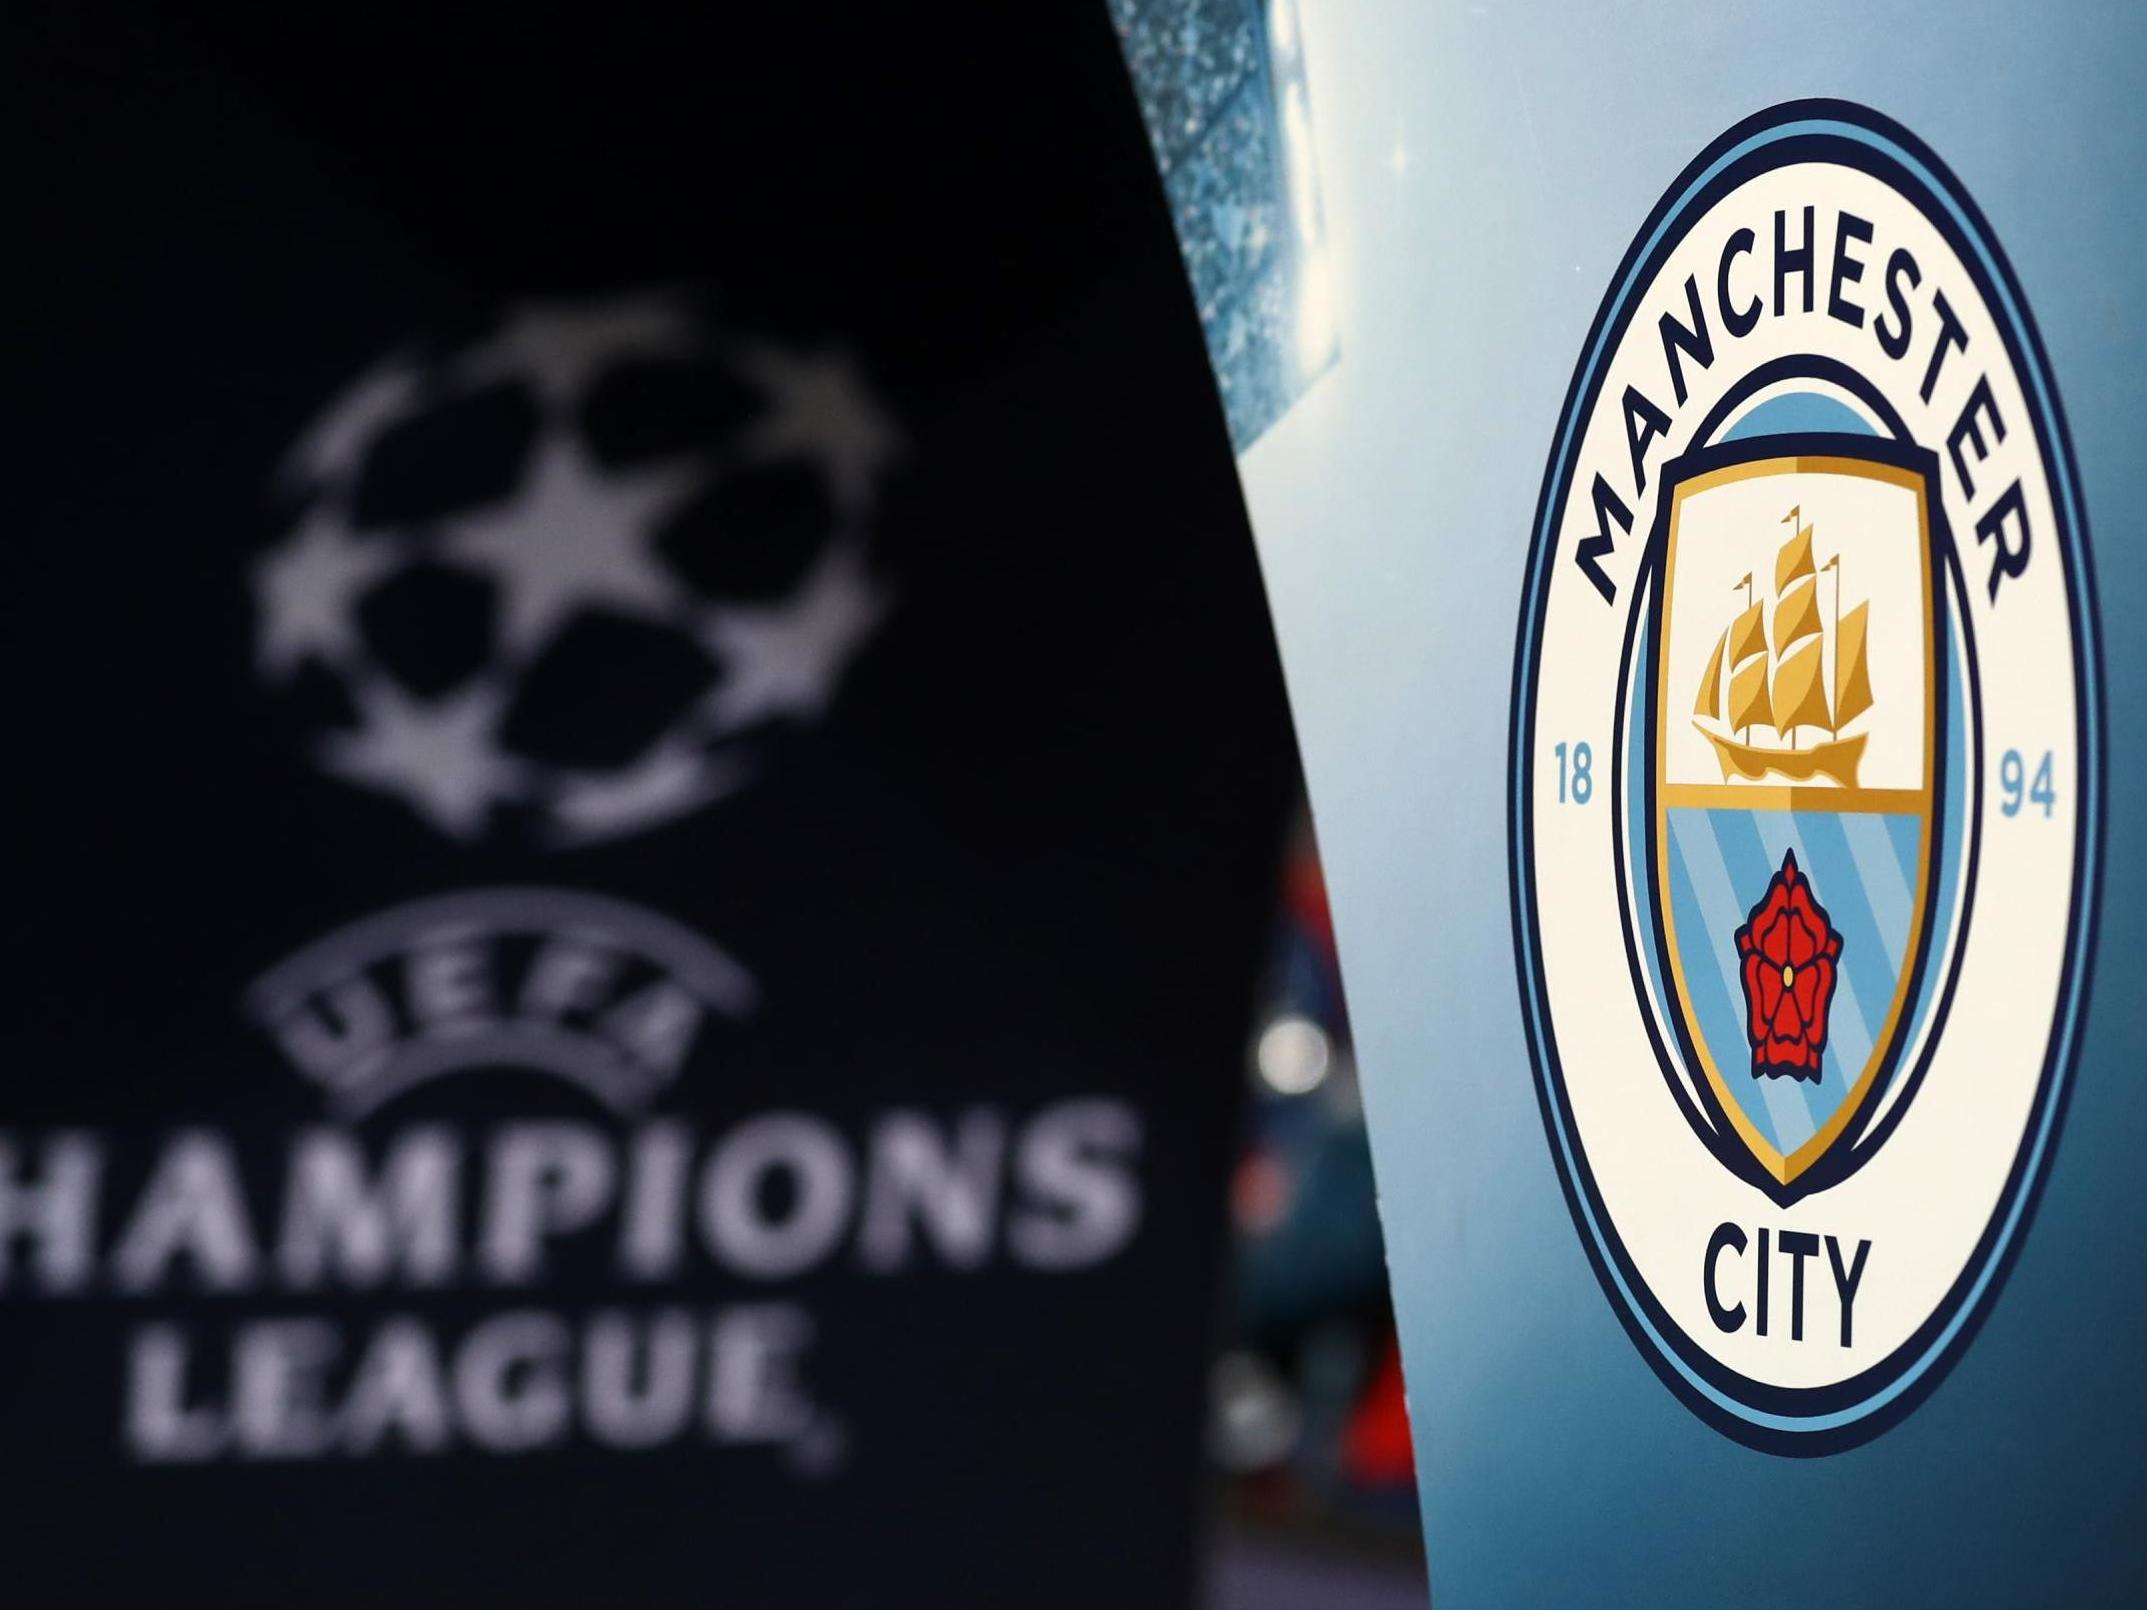 Man City banned from Champions League for two seasons and fined €30m by Uefa